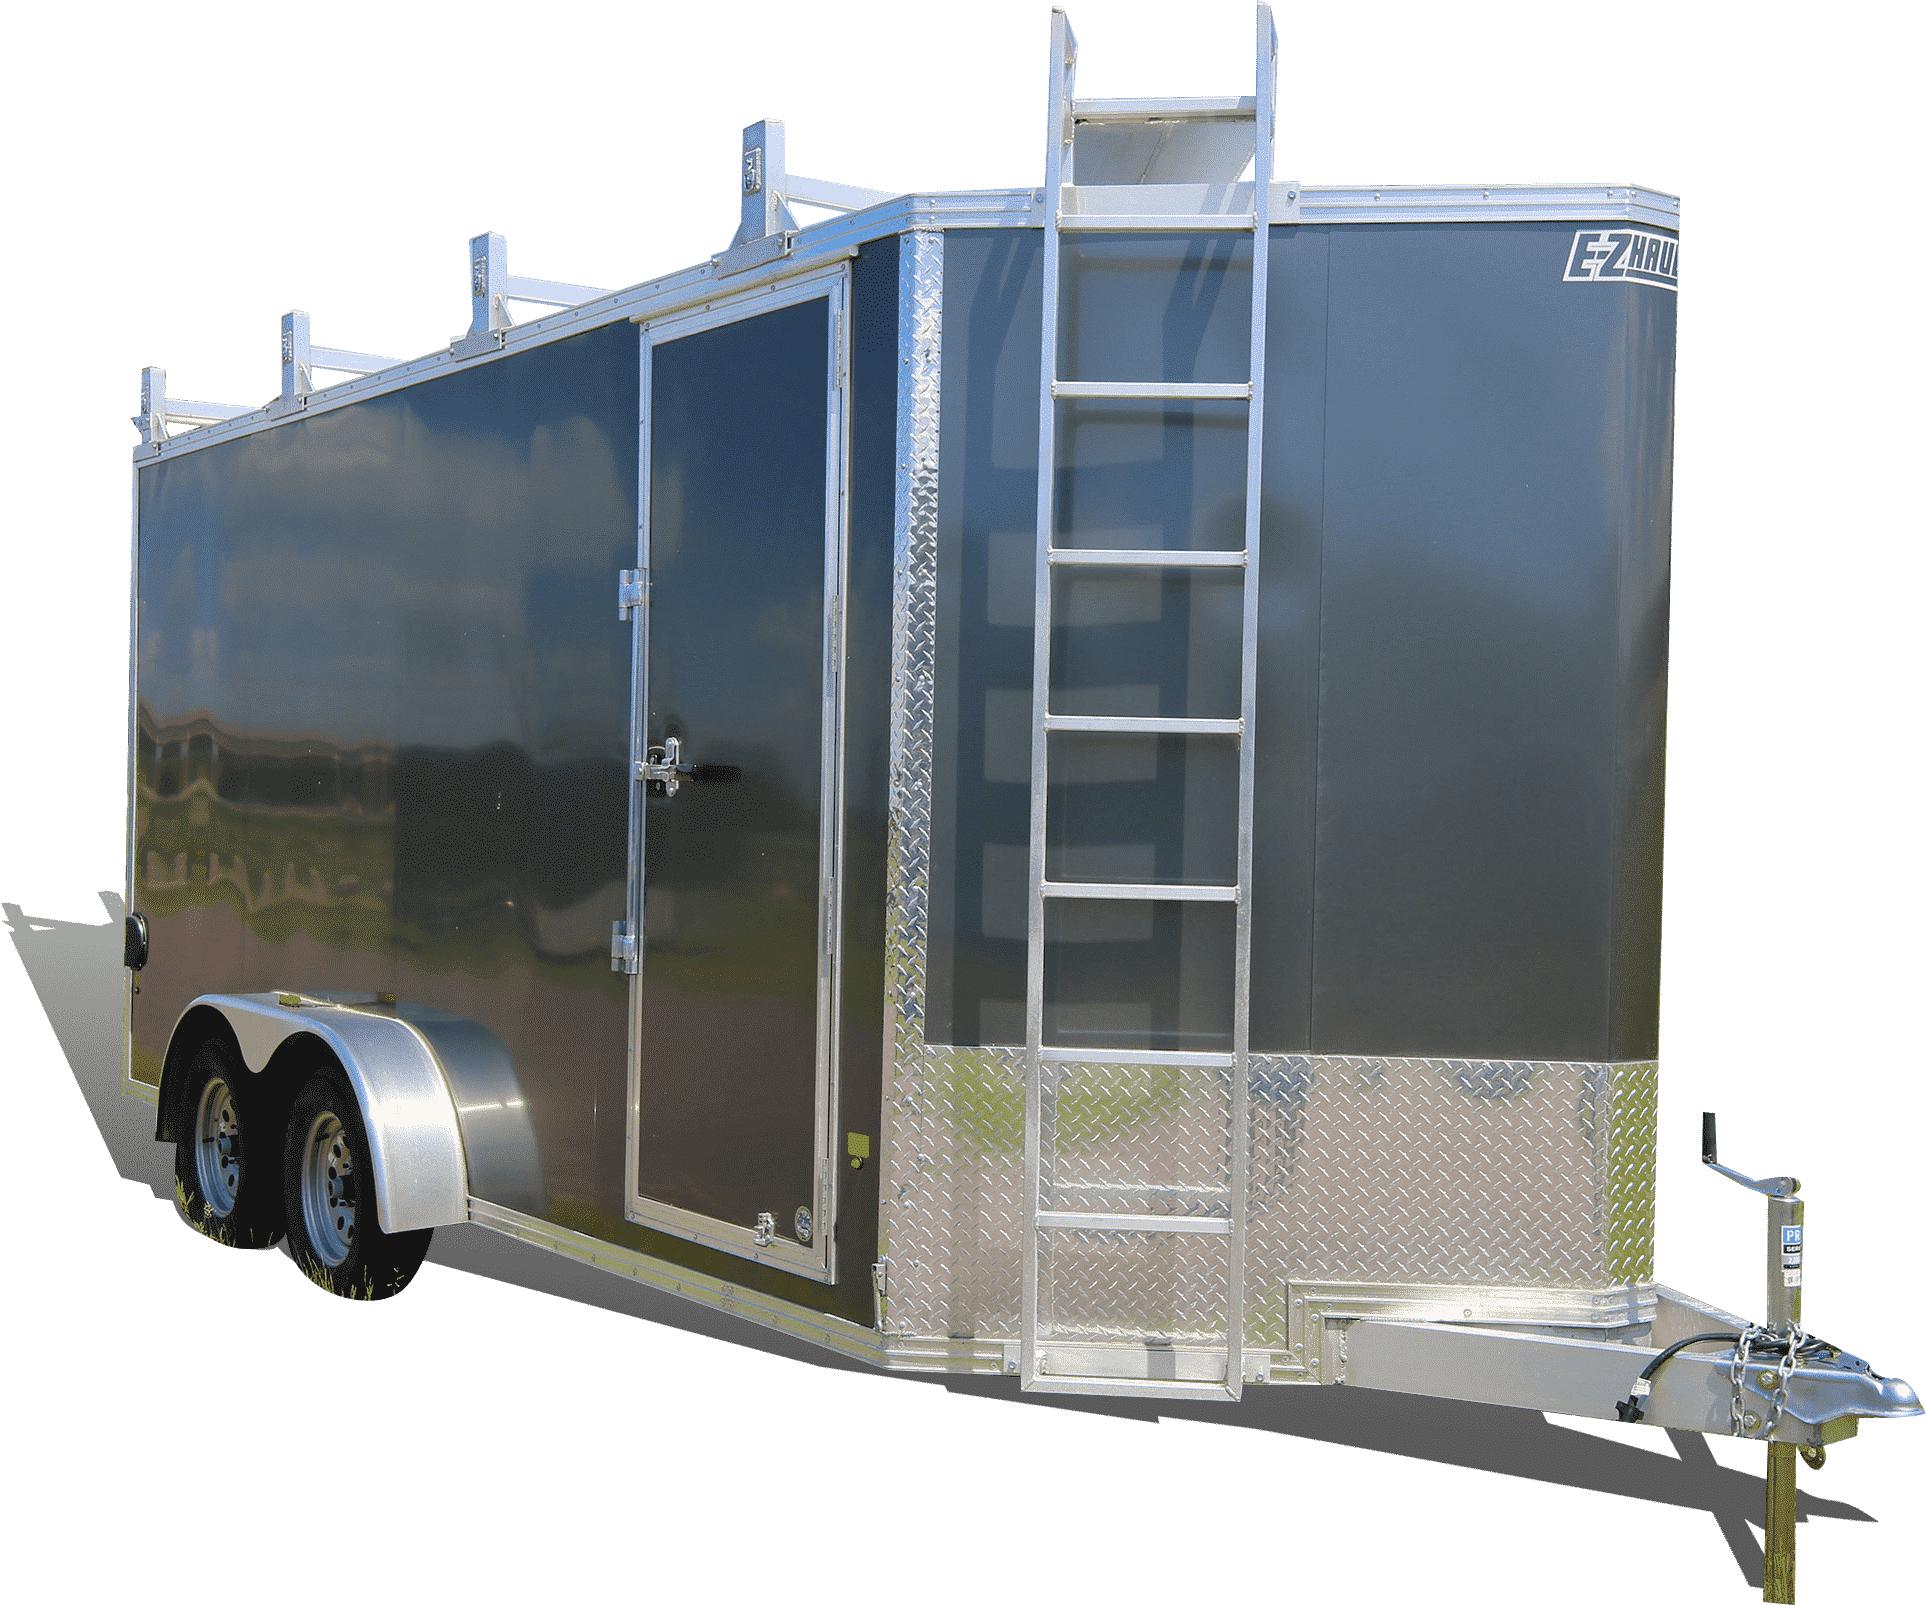 EZ Hauler Ultimate Contractor Package (UCP) Aluminum Trailer at I39 Supply.